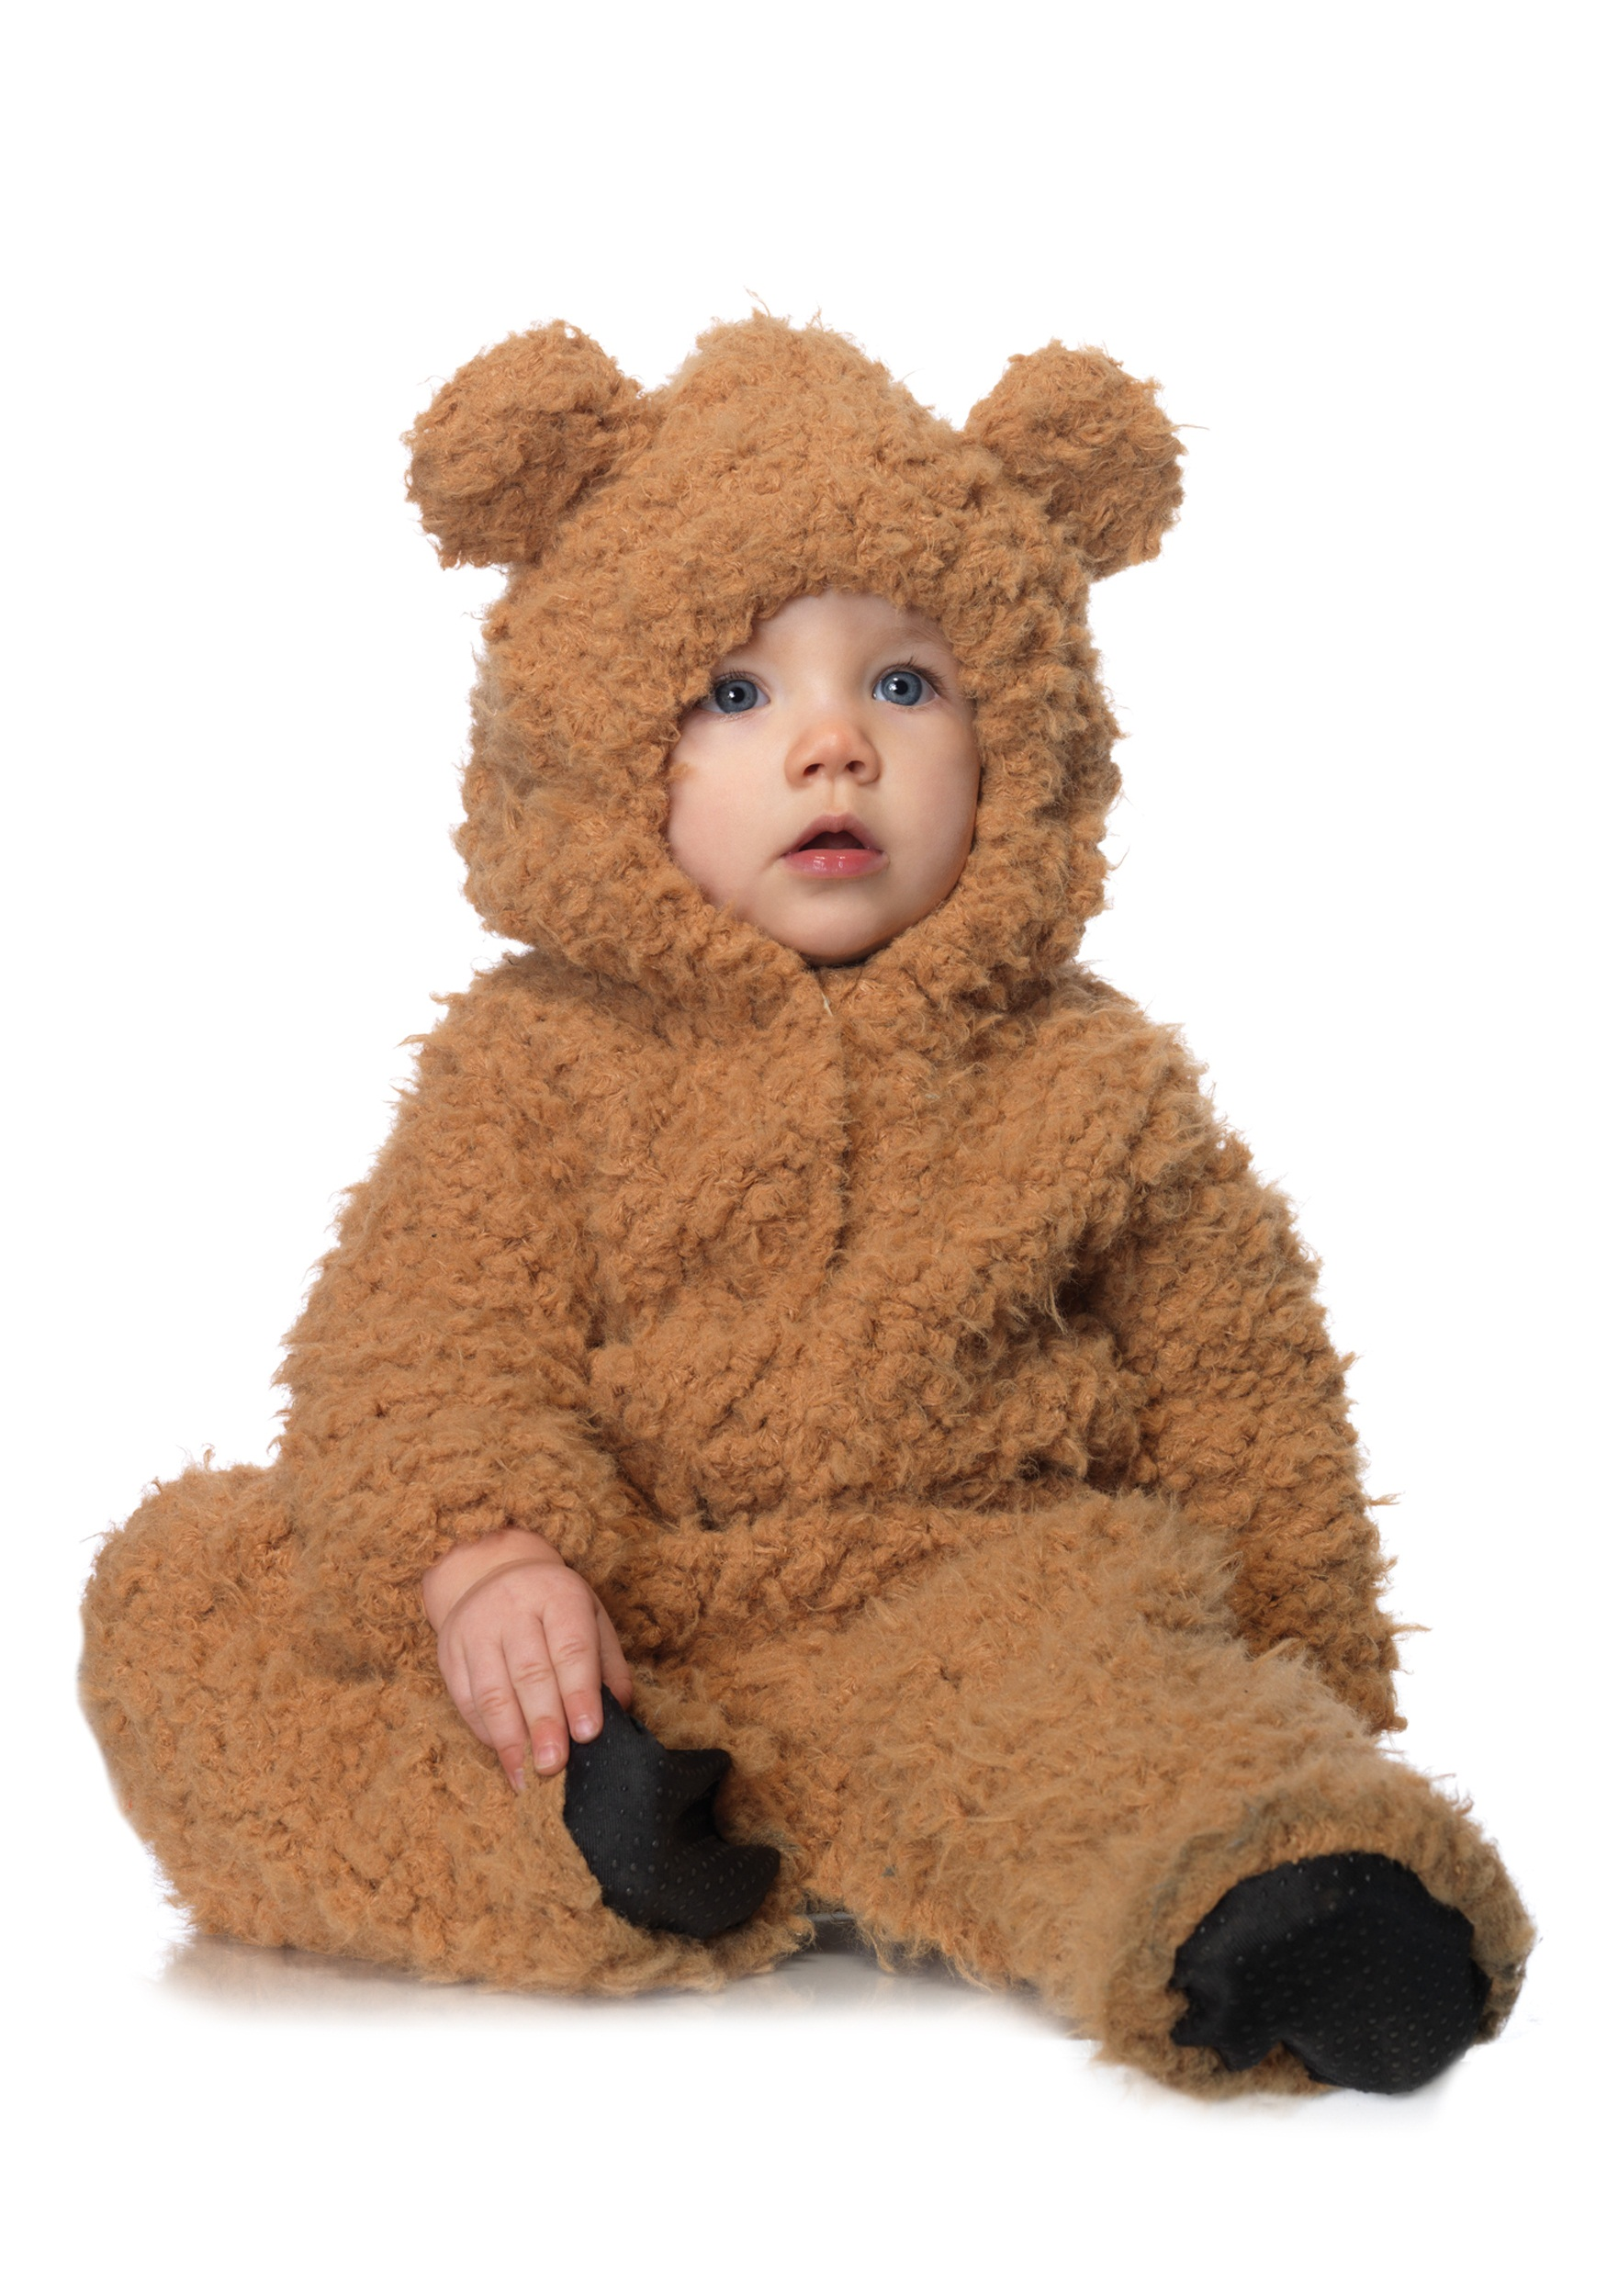 bear outfit for baby